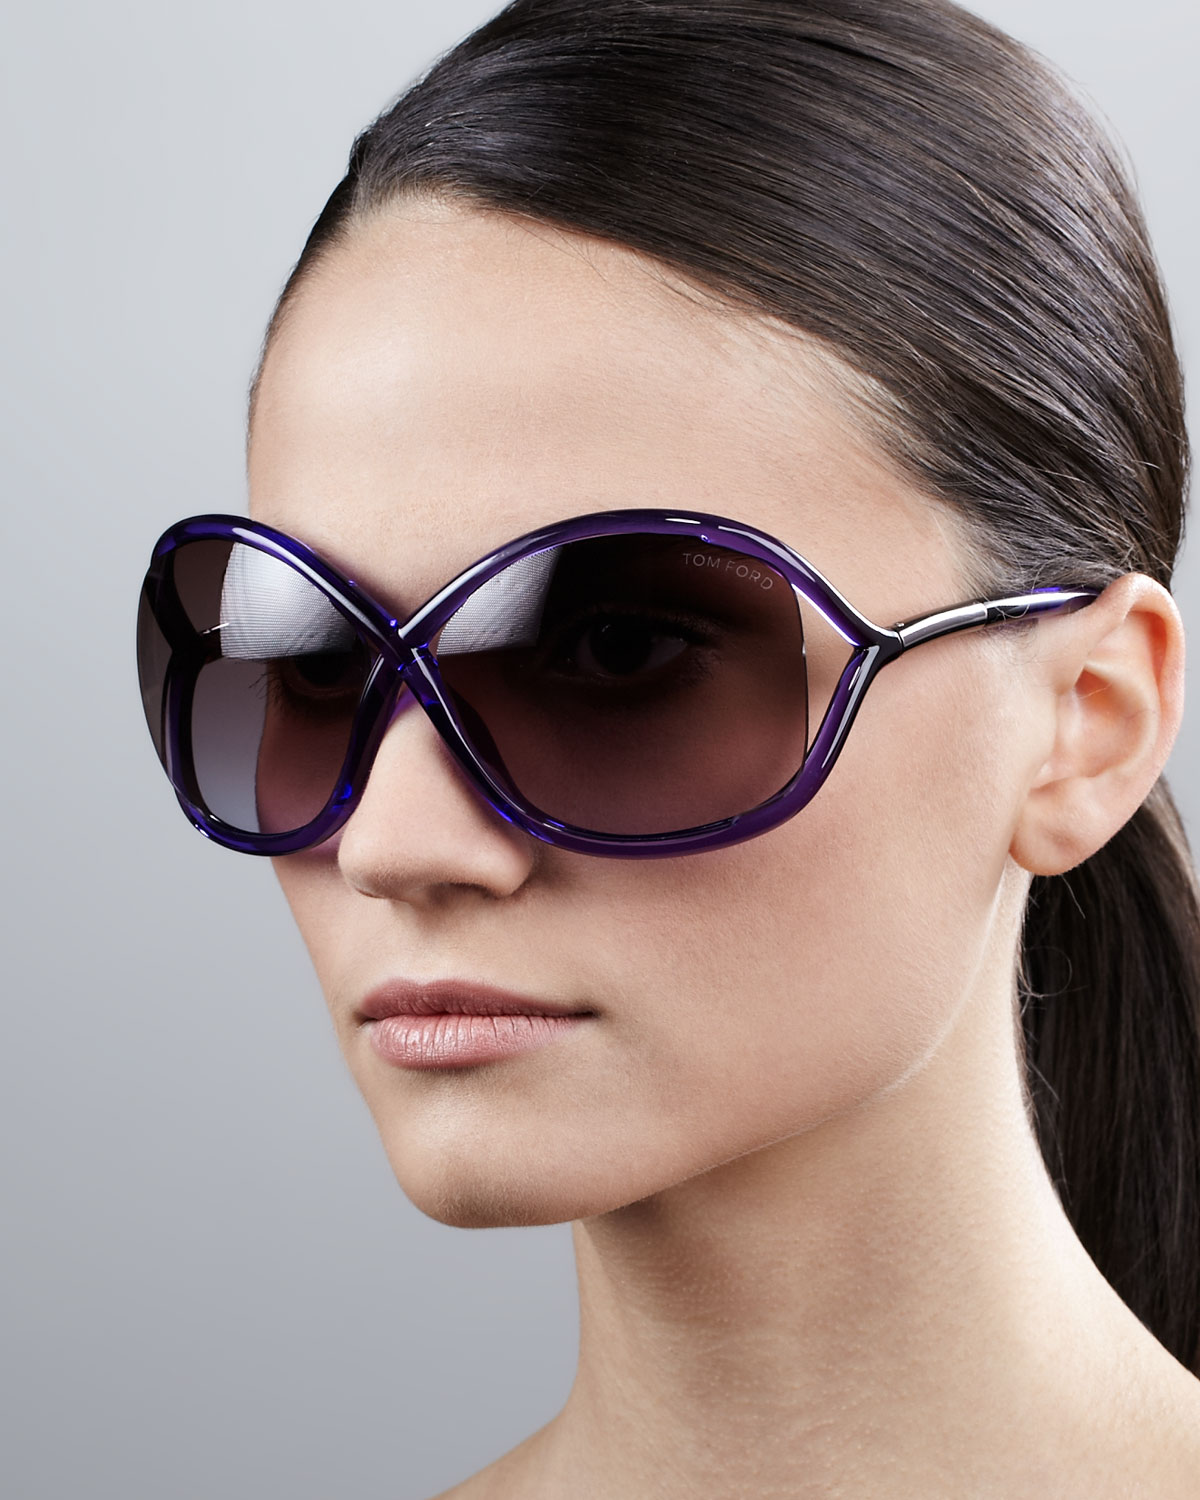 fd2674a460512 Tom Ford Whitney Bold Sunglasses in Black - Lyst